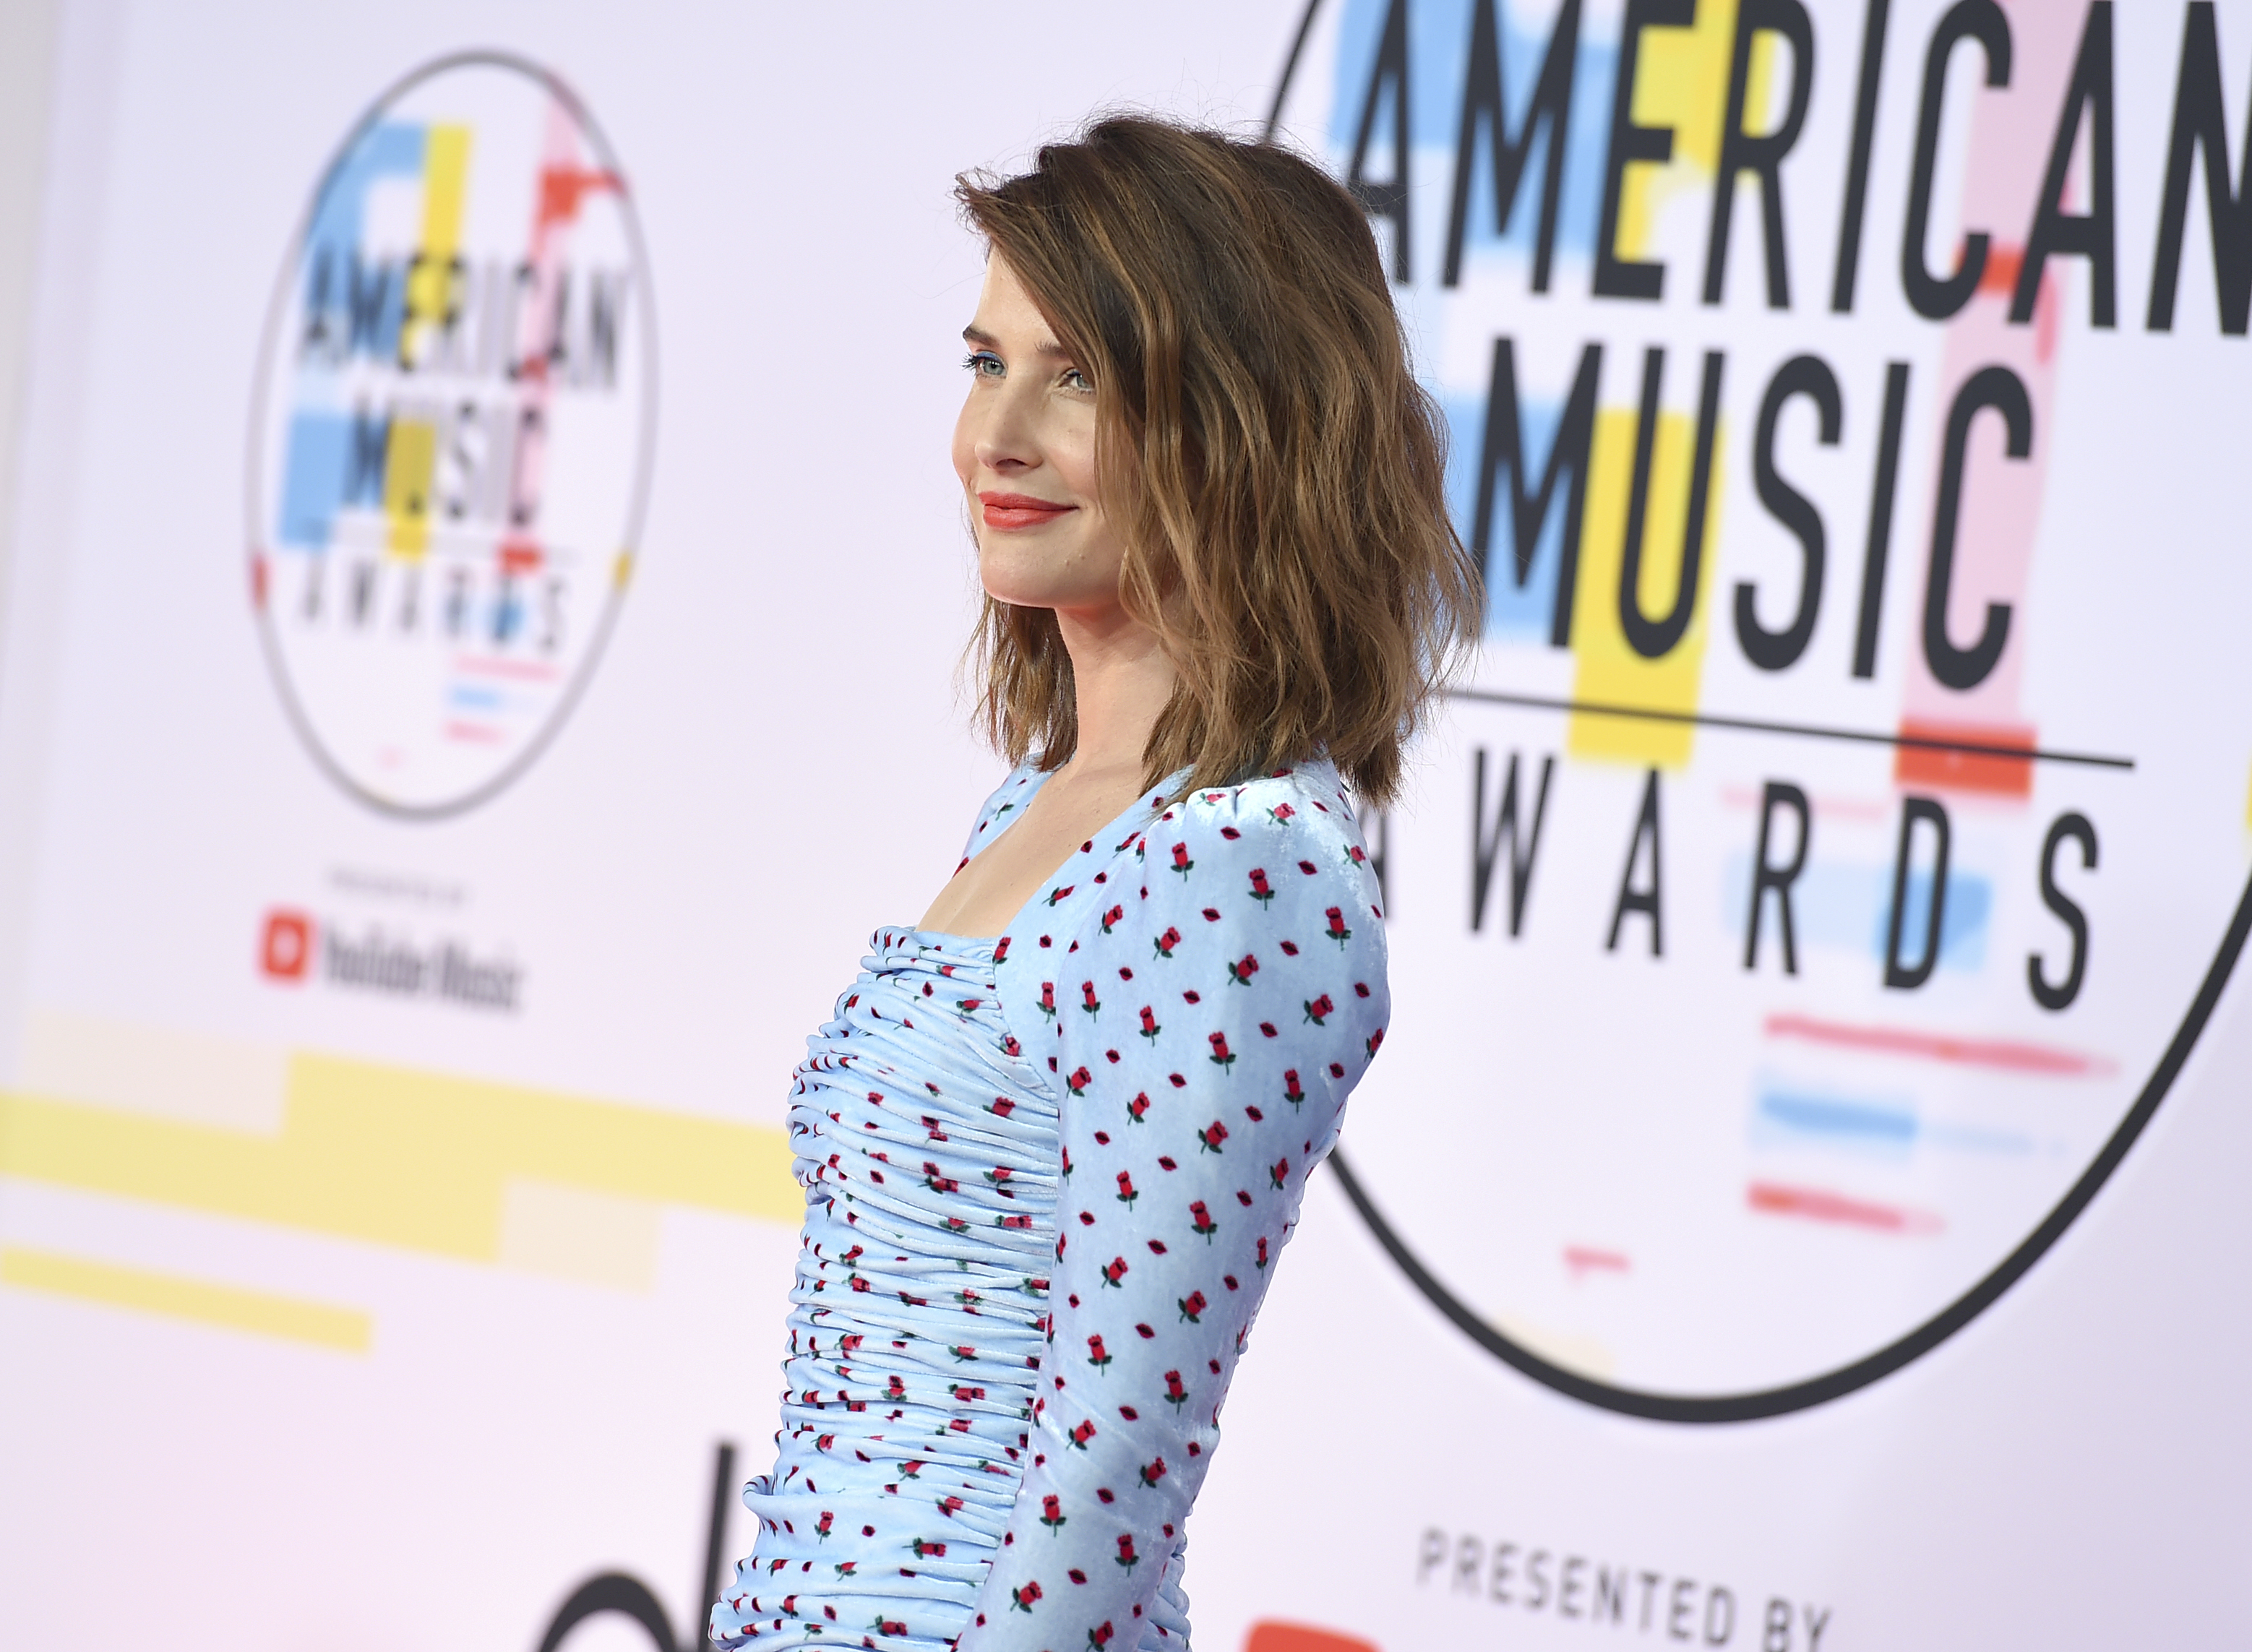 "<div class=""meta image-caption""><div class=""origin-logo origin-image none""><span>none</span></div><span class=""caption-text"">Cobie Smulders arrives at the American Music Awards on Tuesday, Oct. 9, 2018, at the Microsoft Theater in Los Angeles. (Jordan Strauss/Invision/AP)</span></div>"